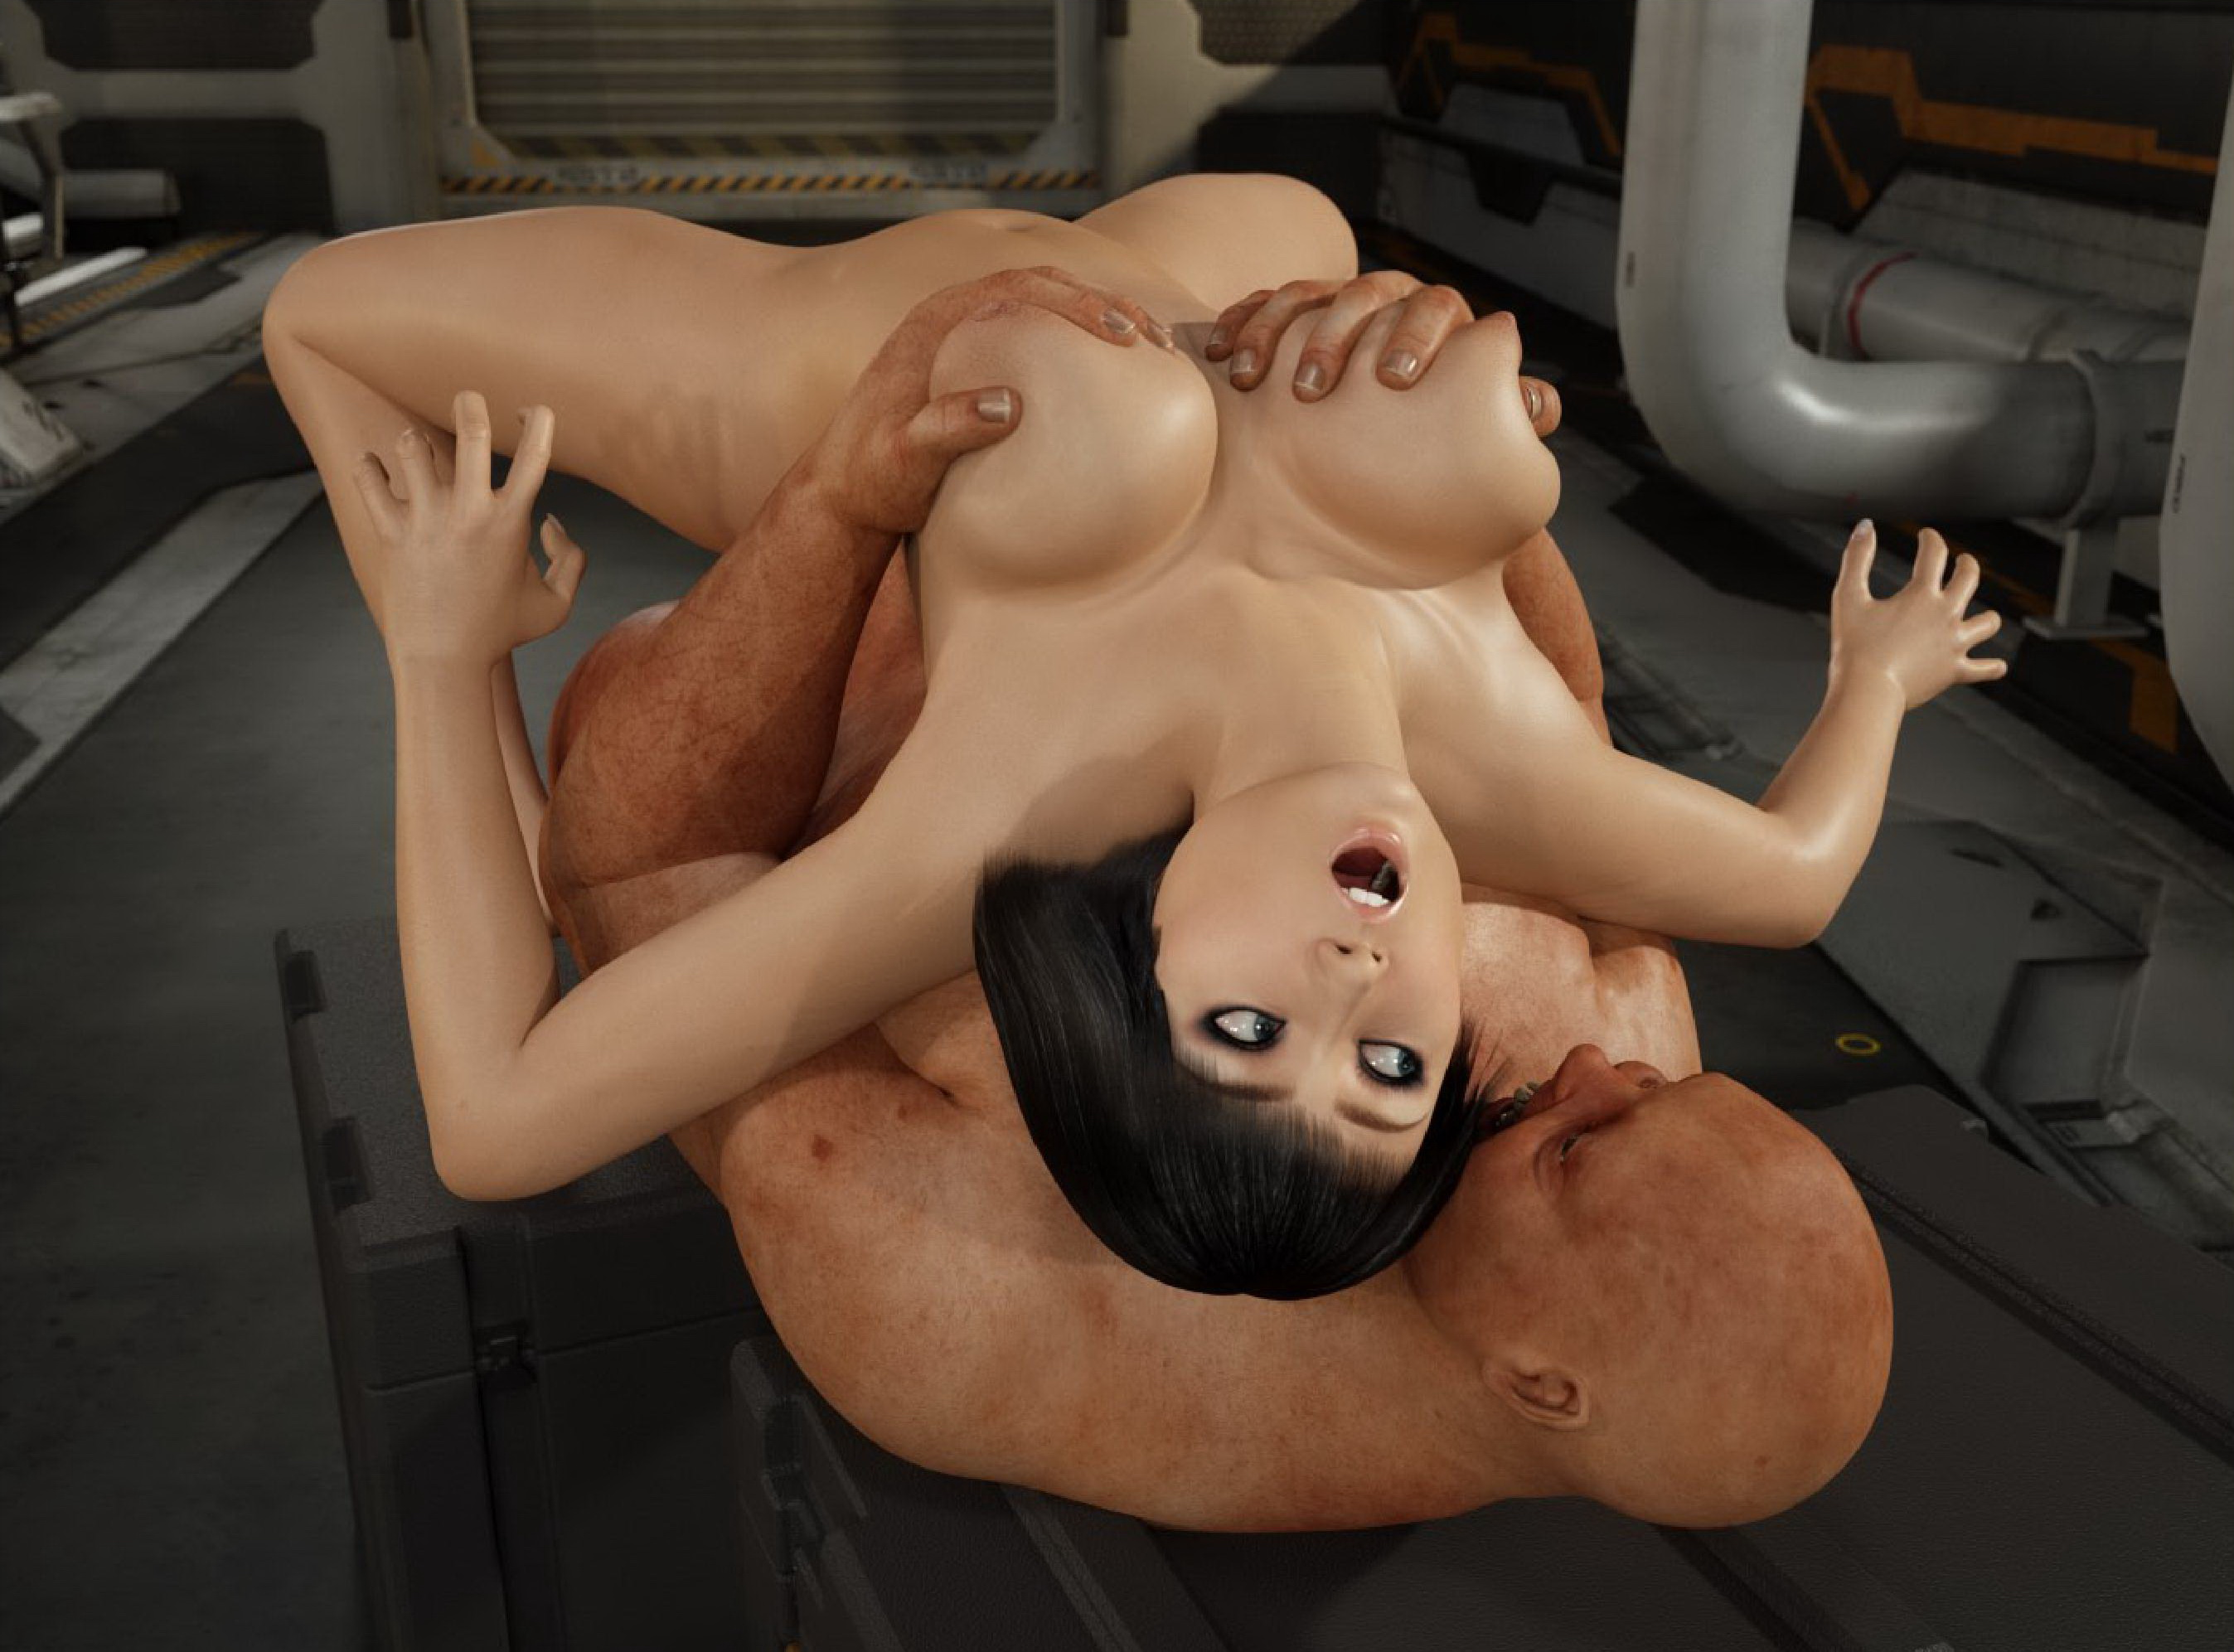 Monster 3dsex videos sexy photo